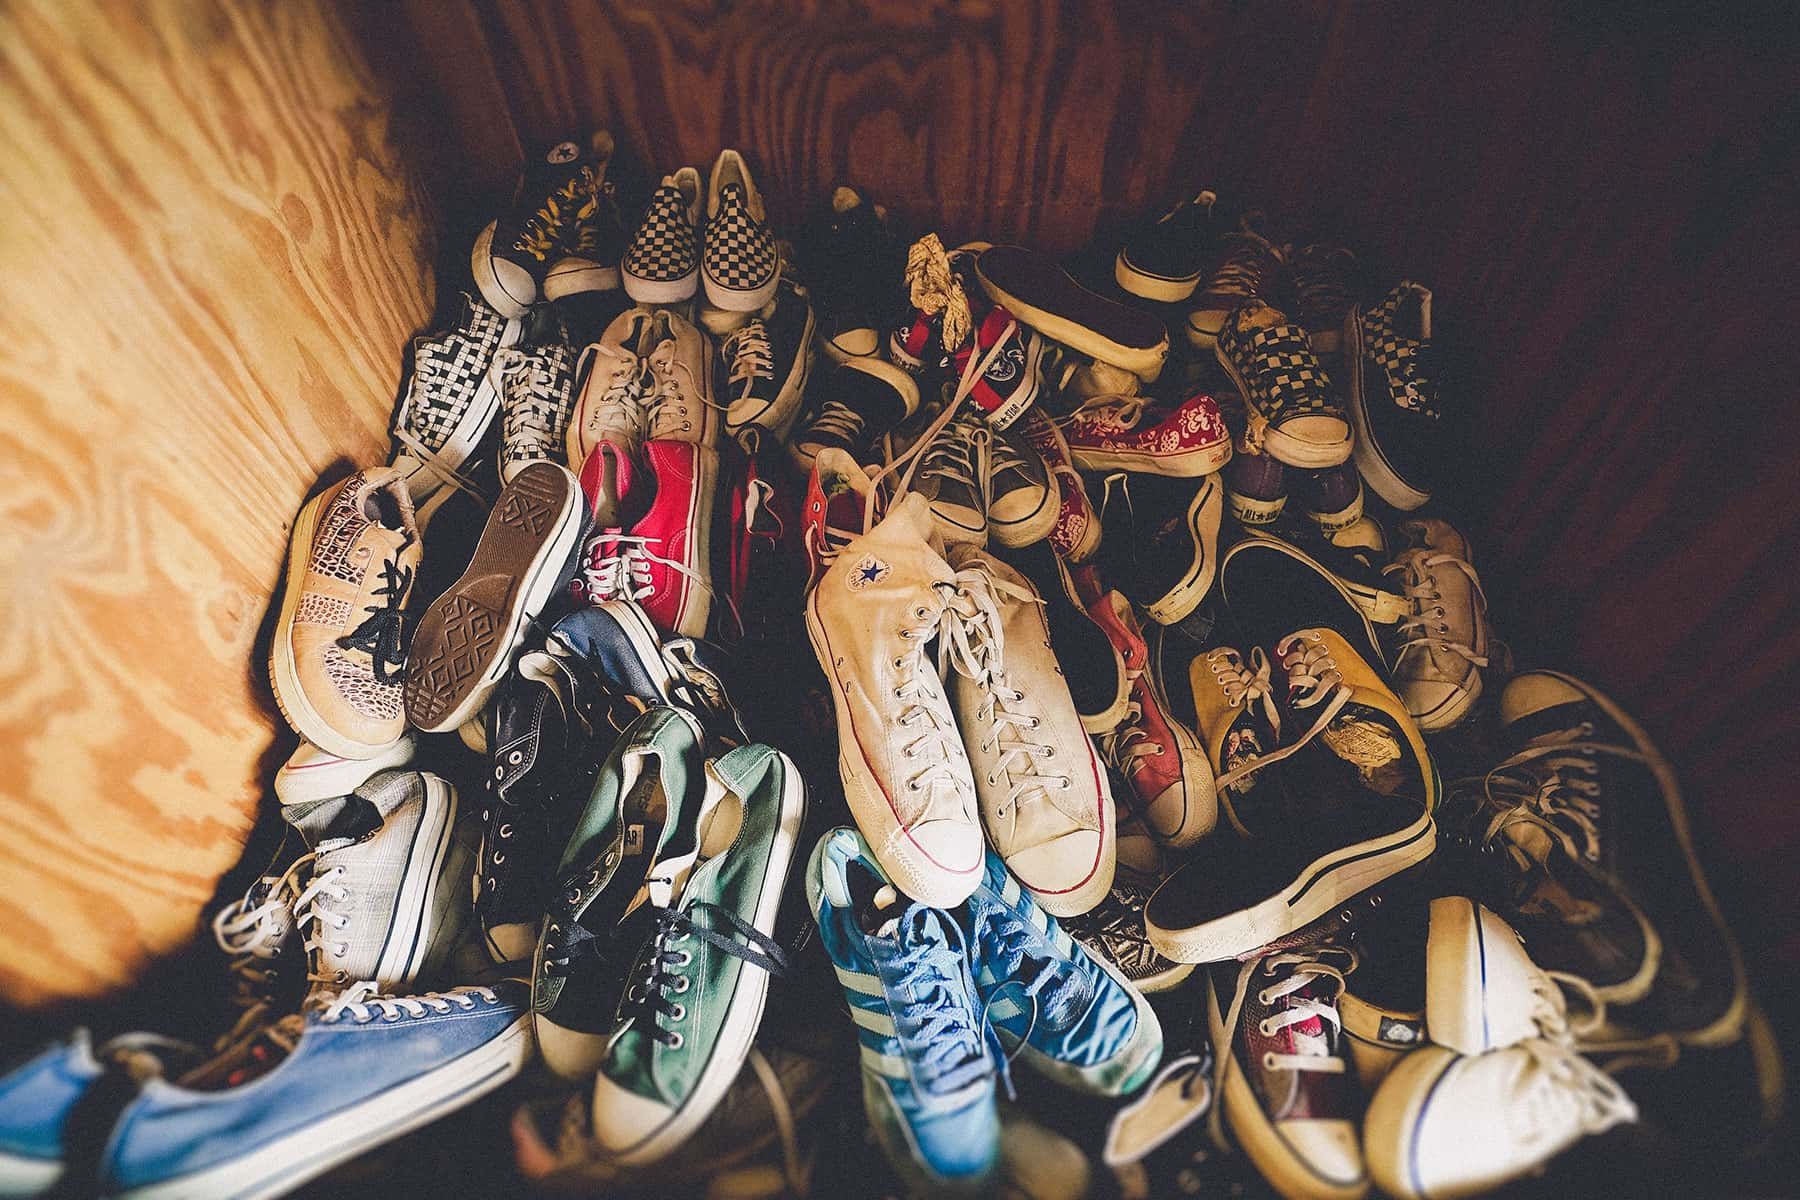 b4ea5d1dc9fb Donations sought for gently worn shoes to help Soles4Souls fight ...